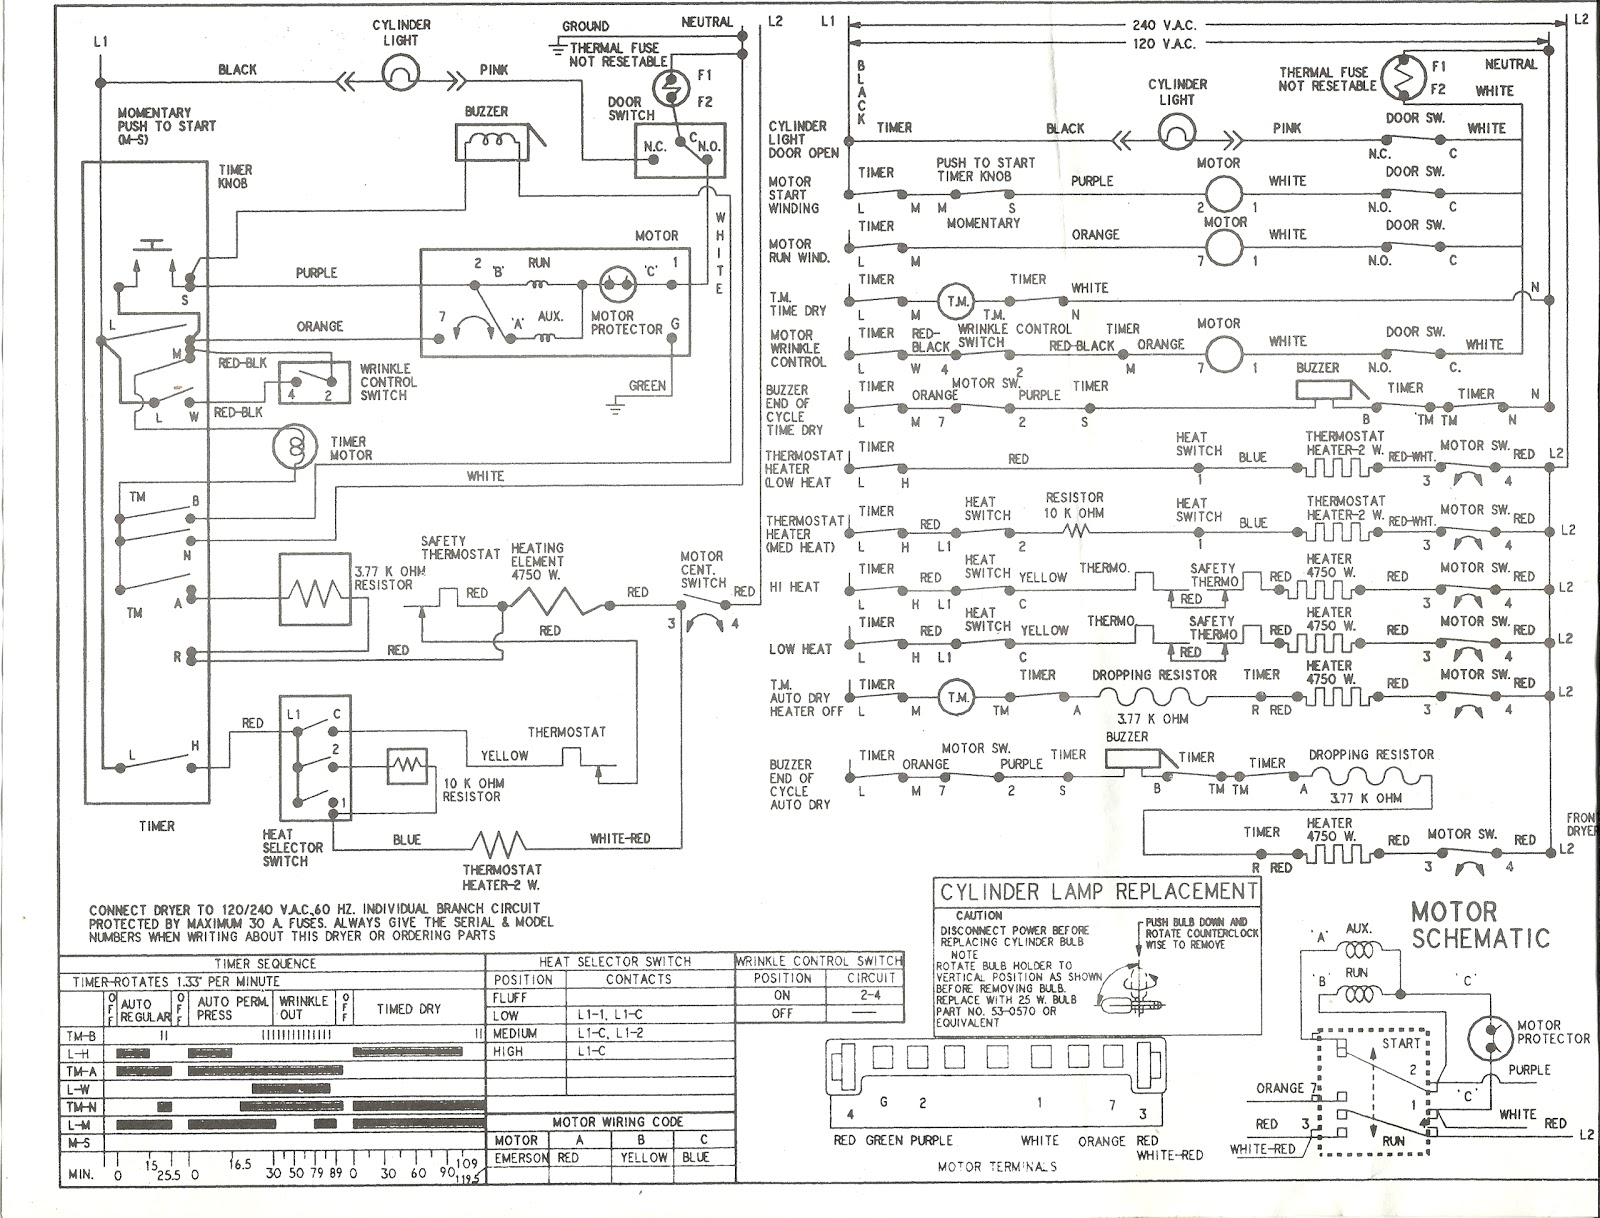 dryer wiring diagram dryer image wiring diagram appliance talk kenmore series electric dryer wiring diagram on dryer wiring diagram